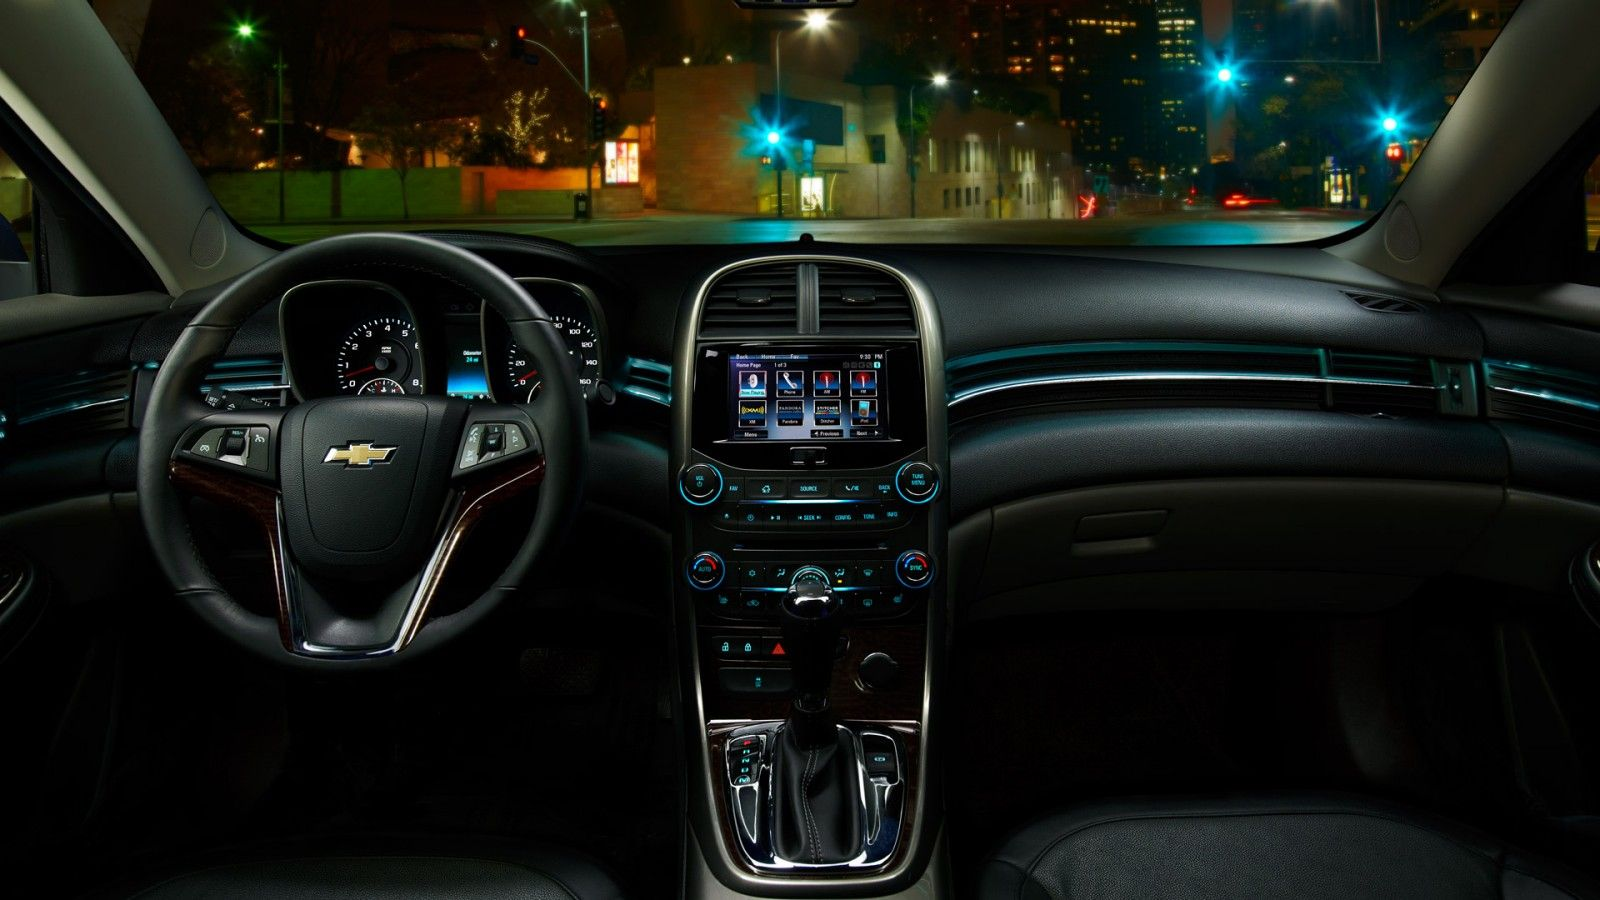 A Jet Black Interior With Ambient Lighting And Chevrolet Mylink